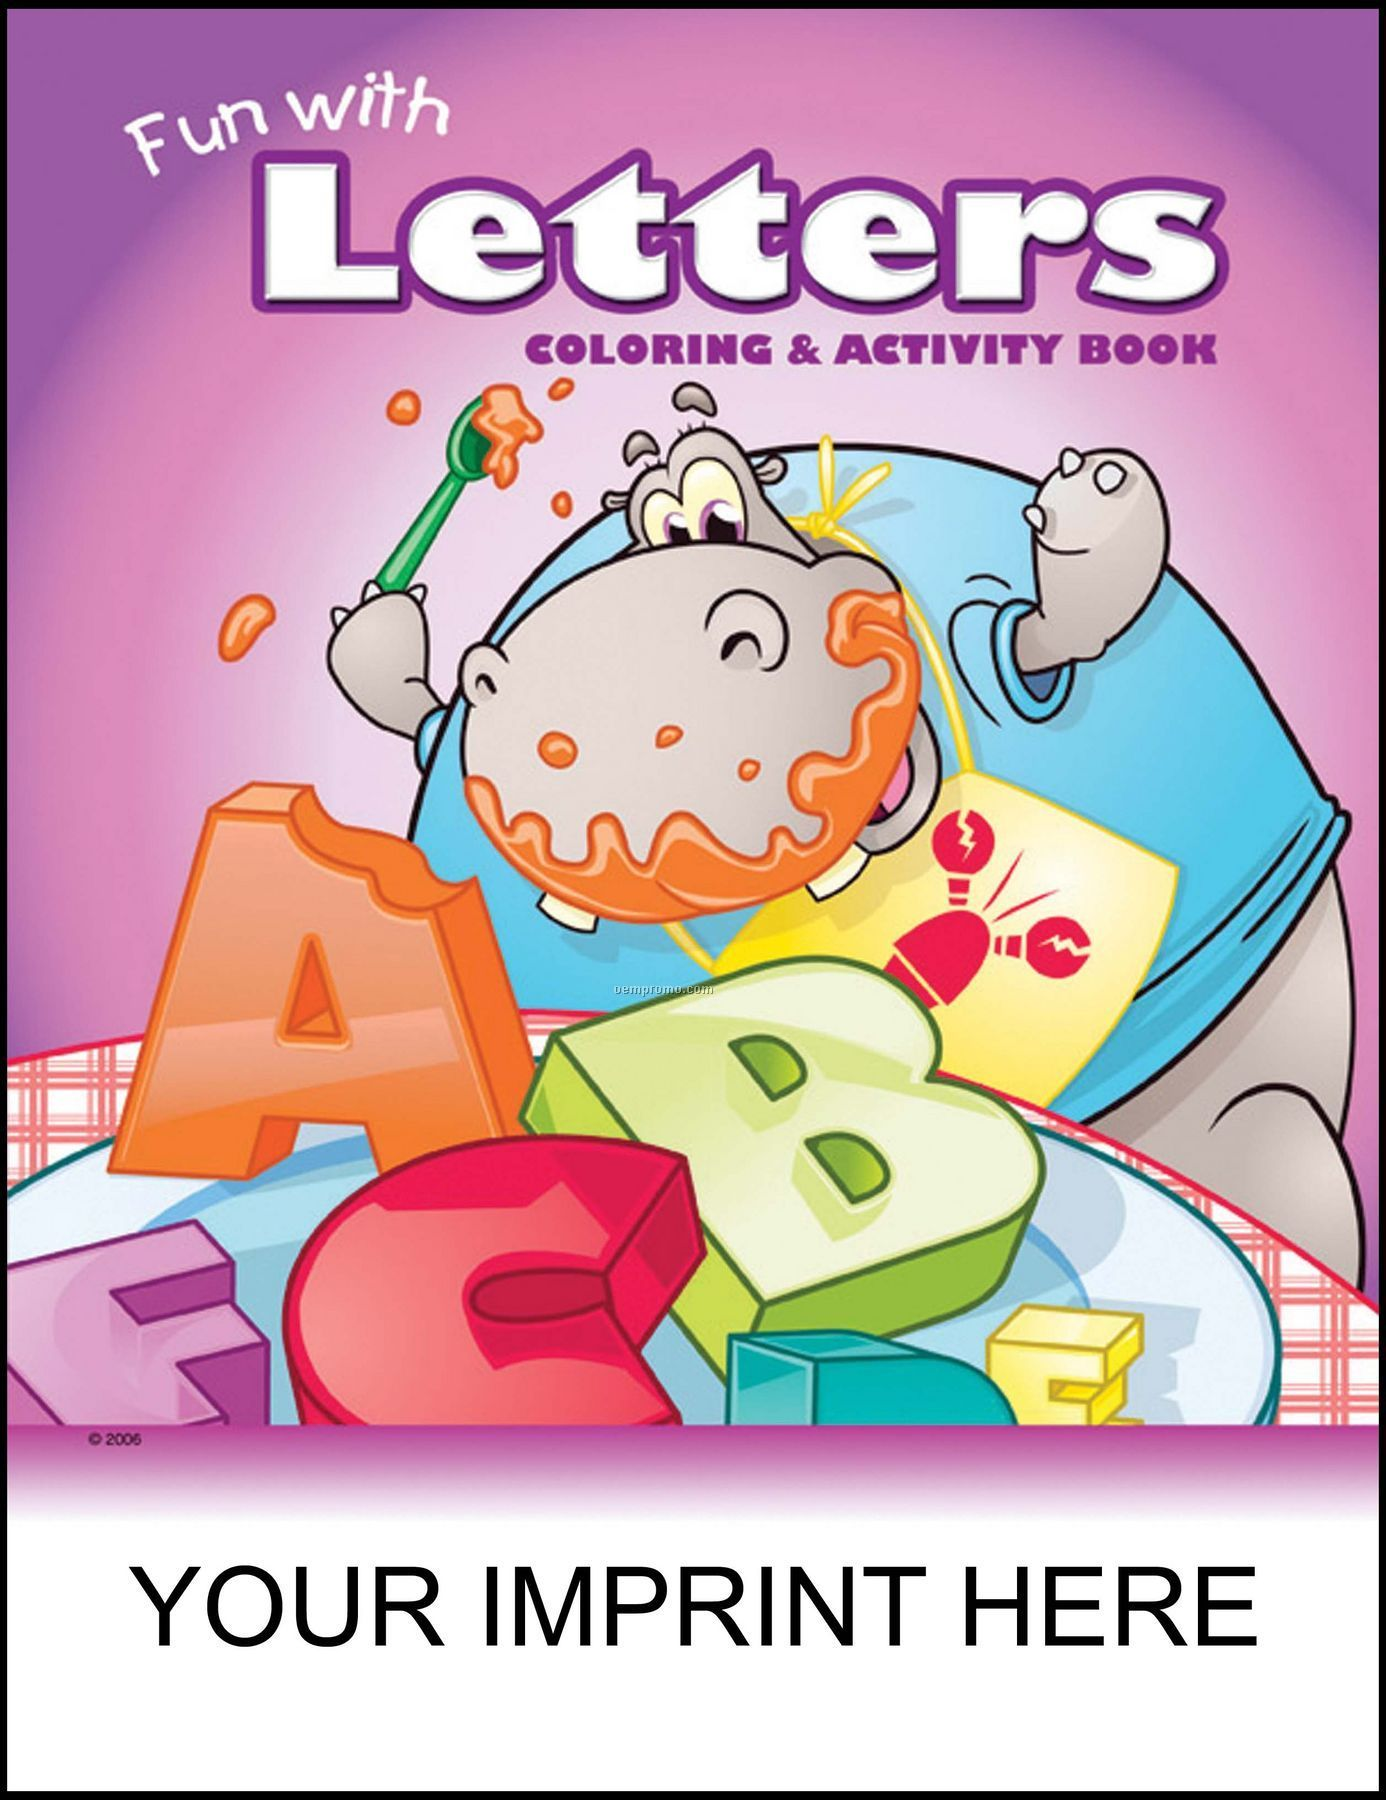 Fun With Letters Coloring & Activity Book